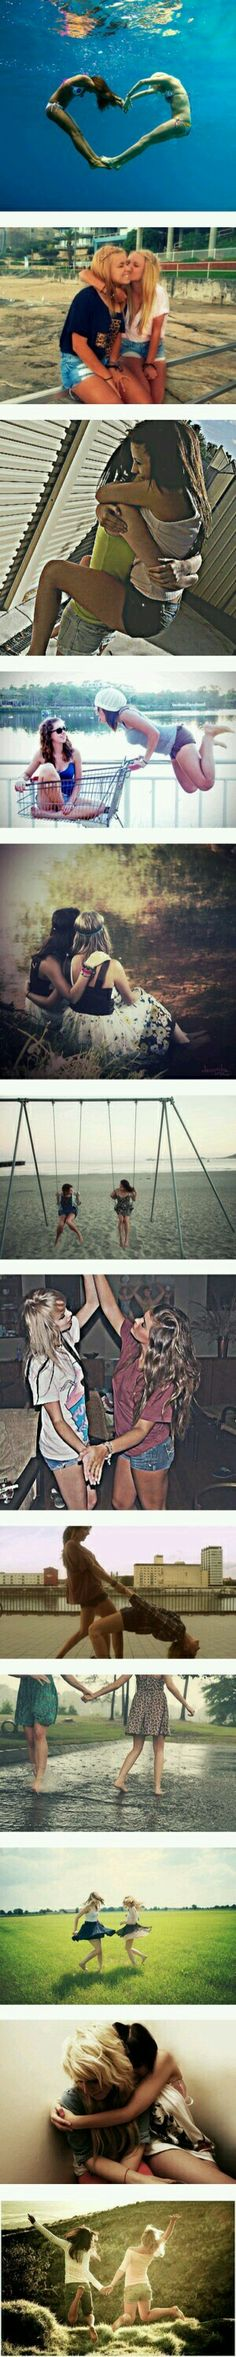 I need a friend to do these pics with :)